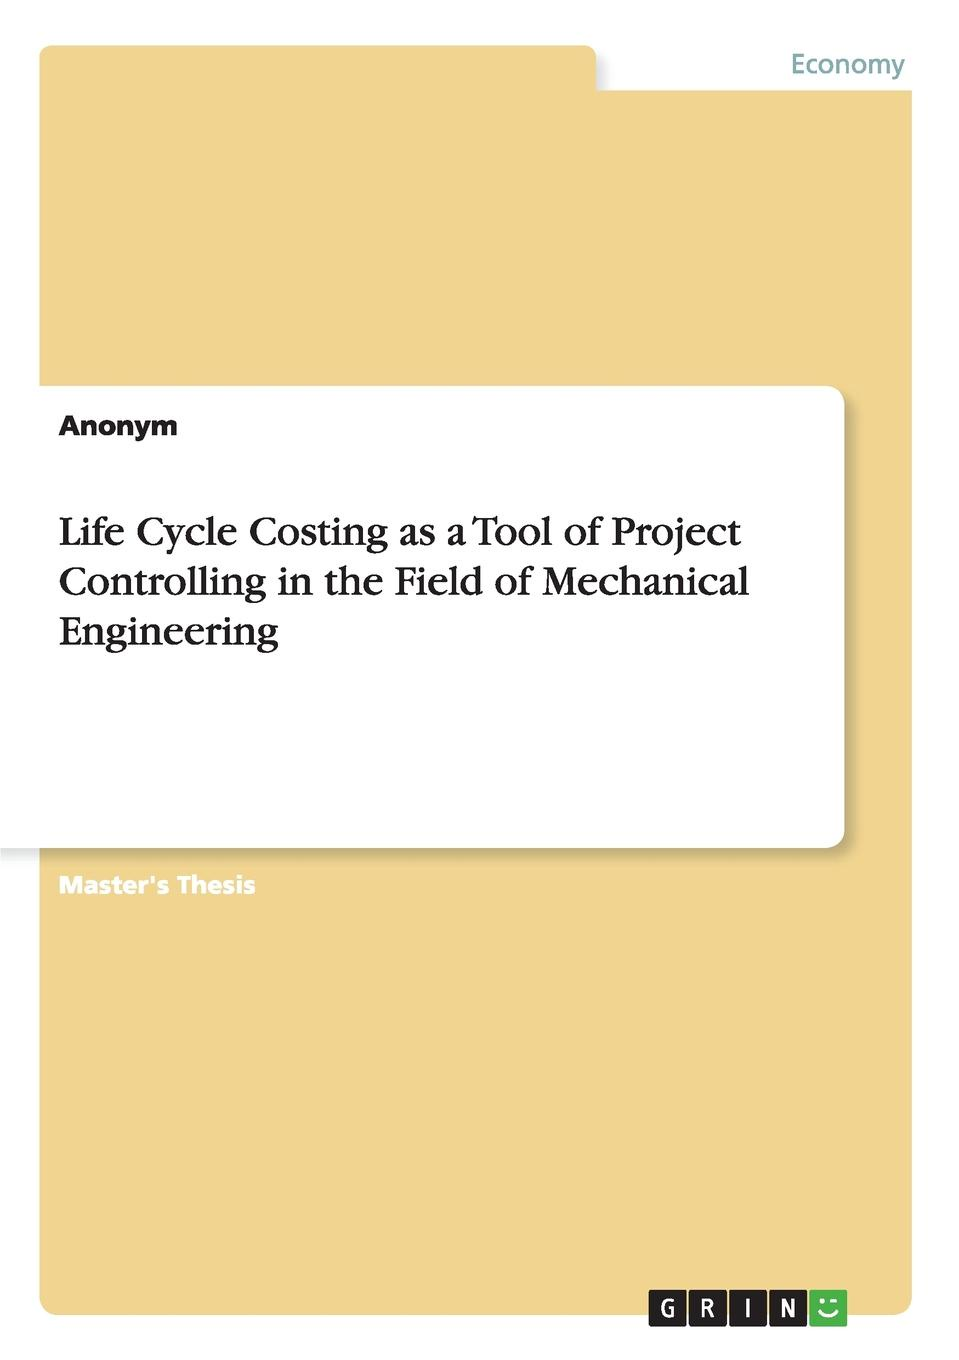 лучшая цена Неустановленный автор Life Cycle Costing as a Tool of Project Controlling in the Field of Mechanical Engineering